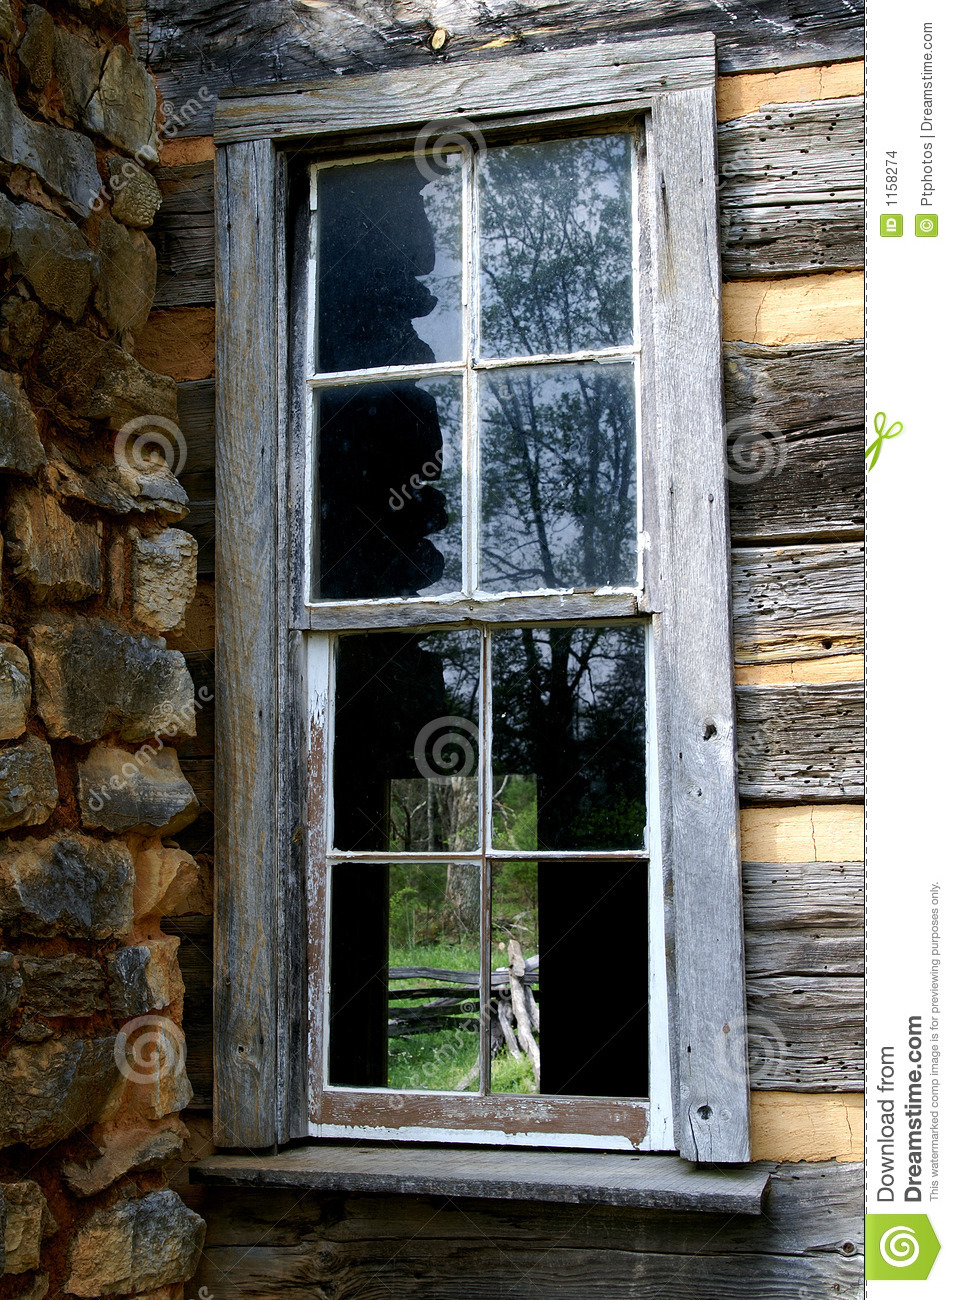 Log cabin broken window detail stock photo image 1158274 for Windows for log cabins